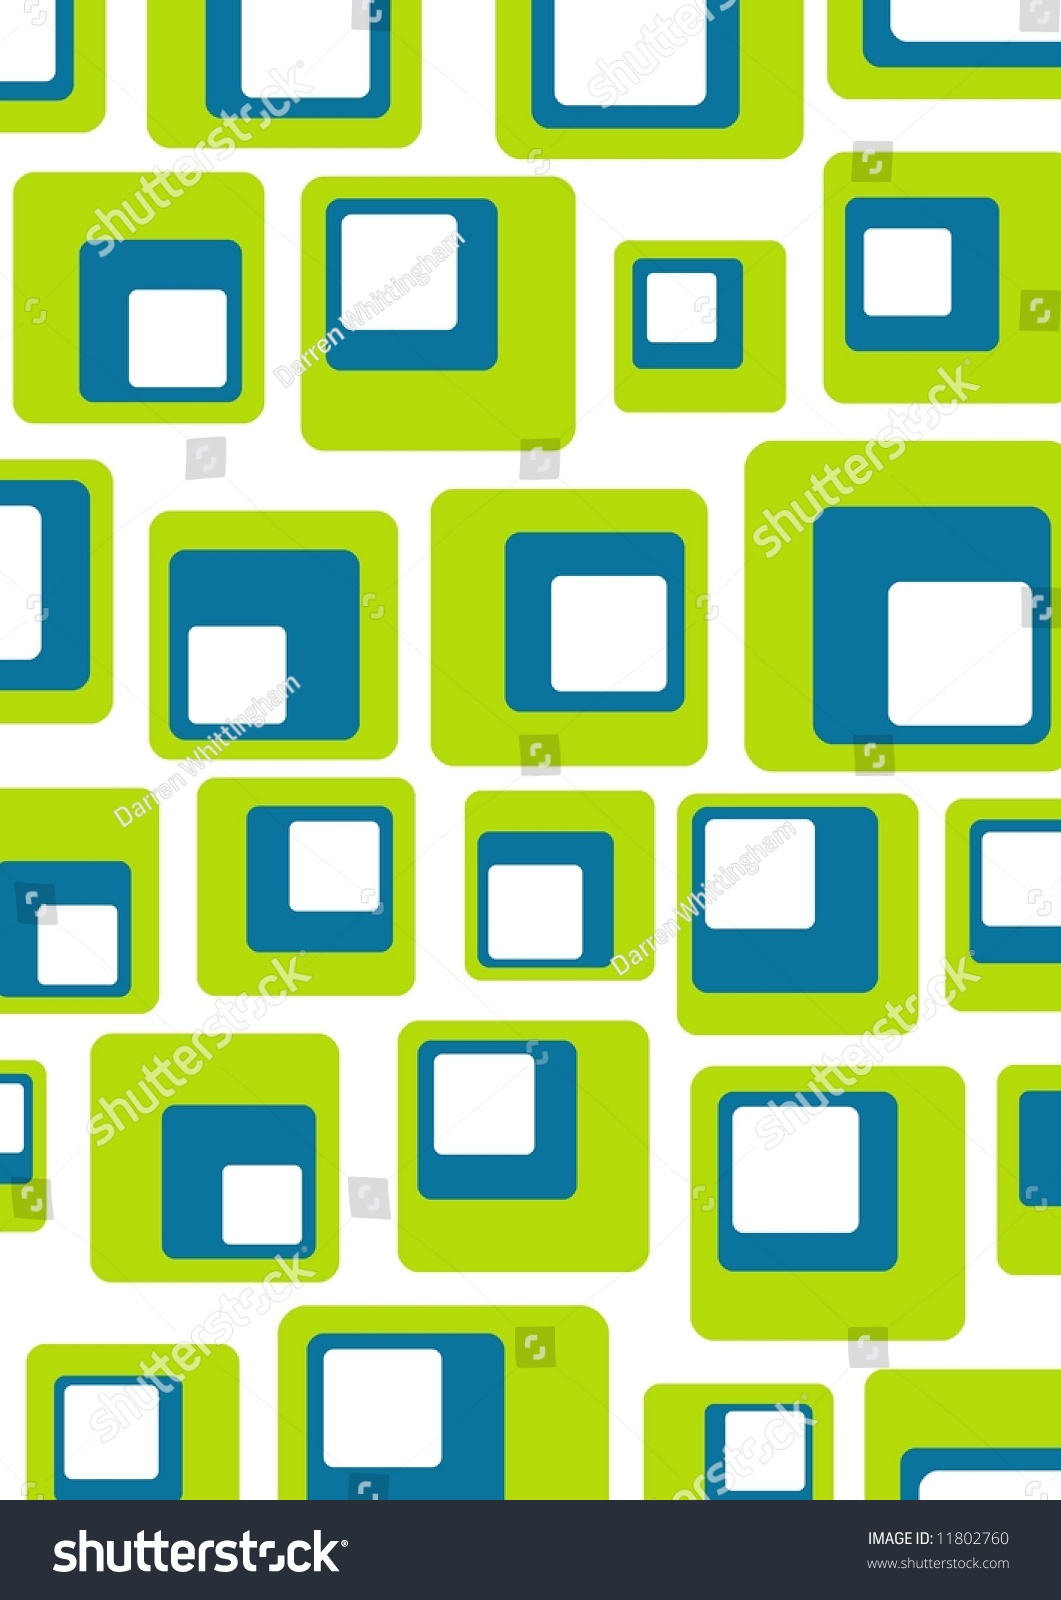 Illustrated Retro Background Of Green, Blue And White ...